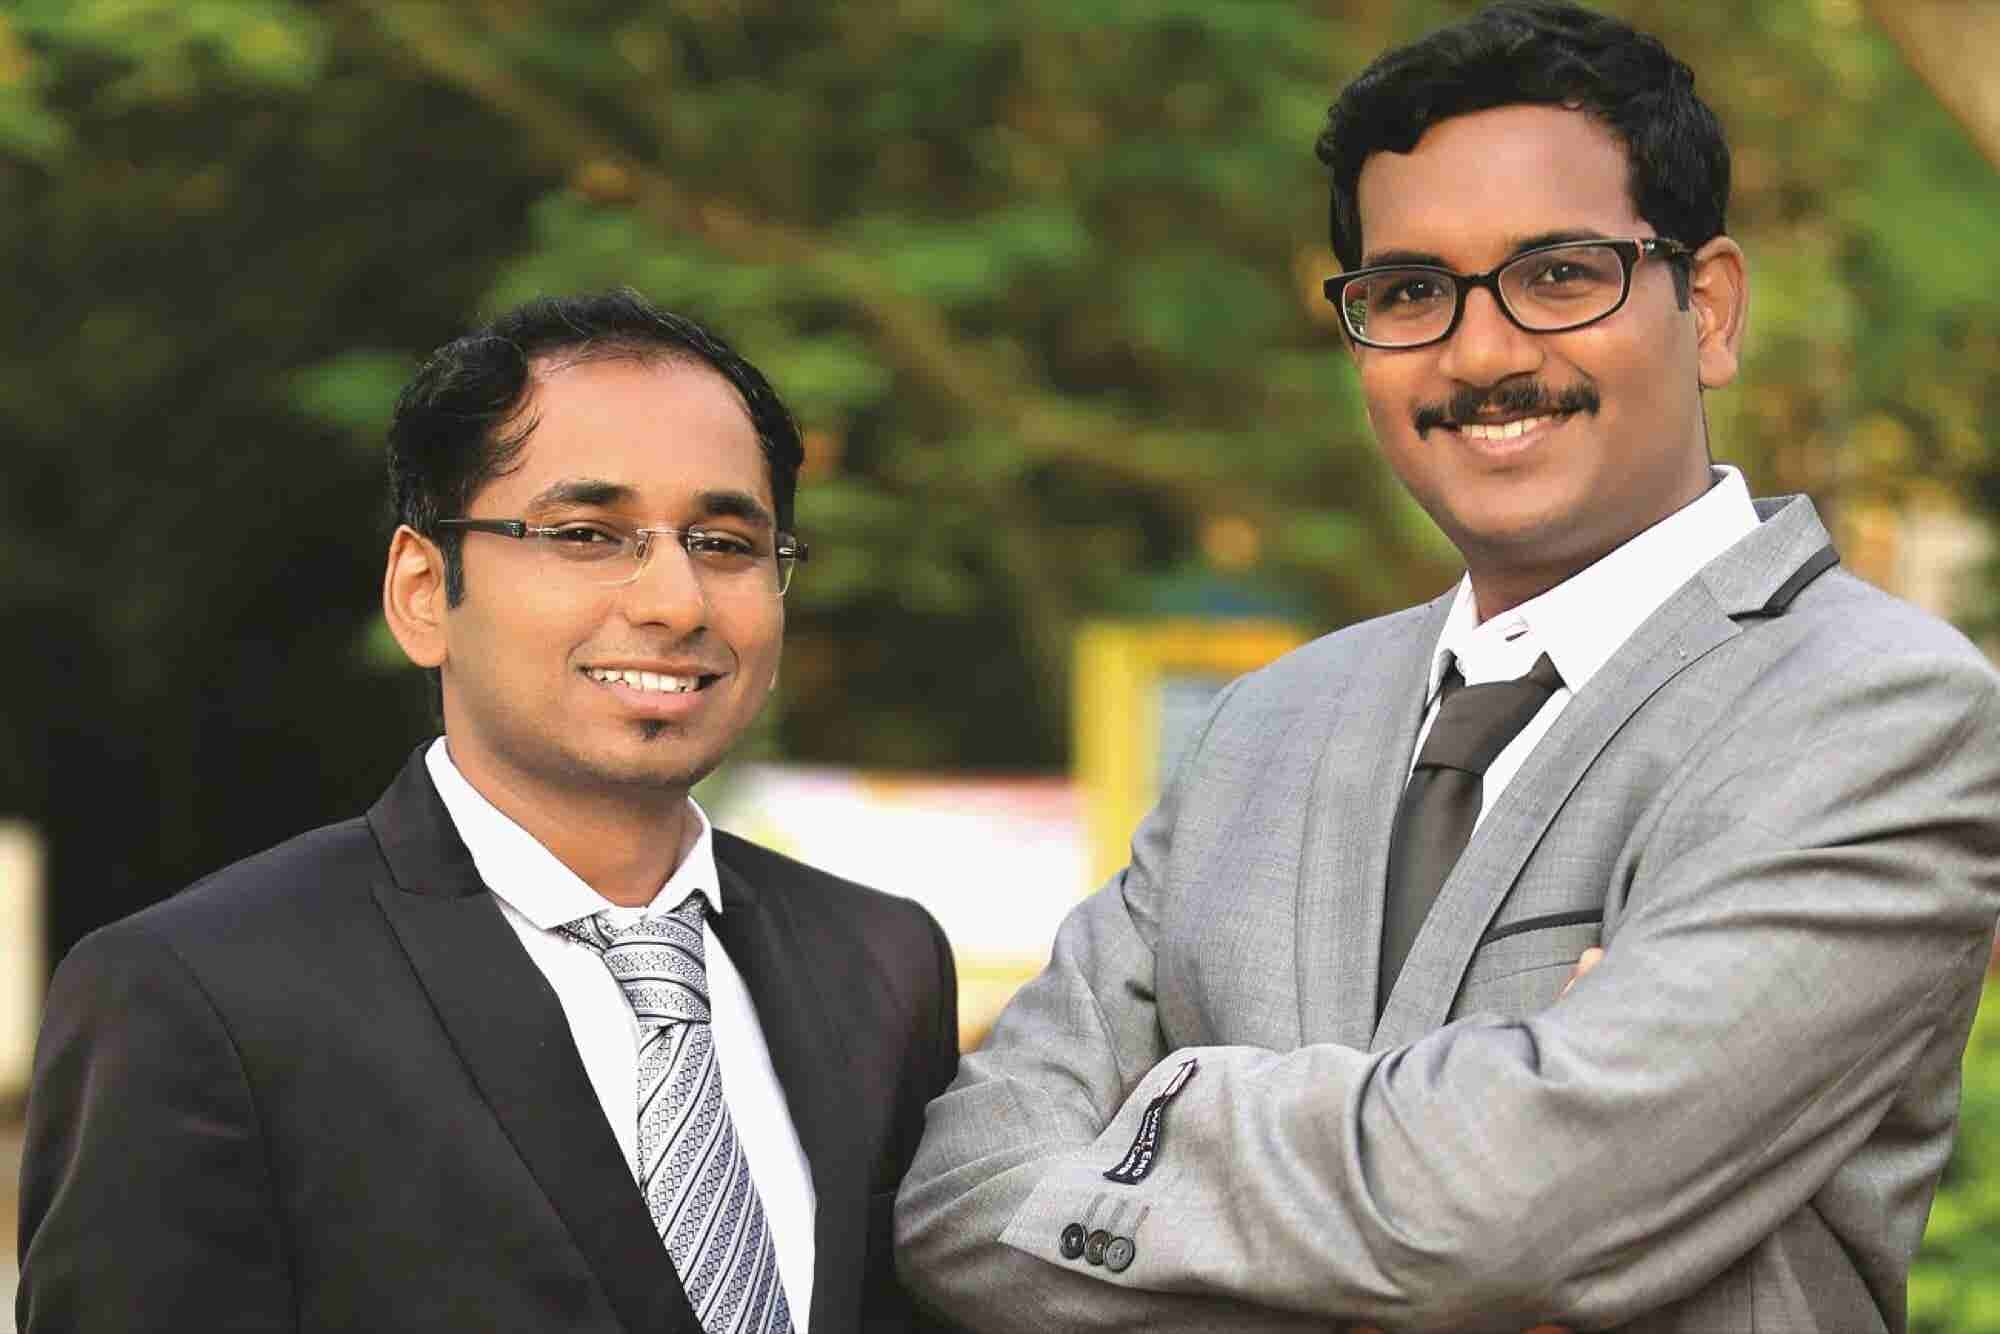 How Two Former IITians are Building the Dream of Largest Online Hospit...